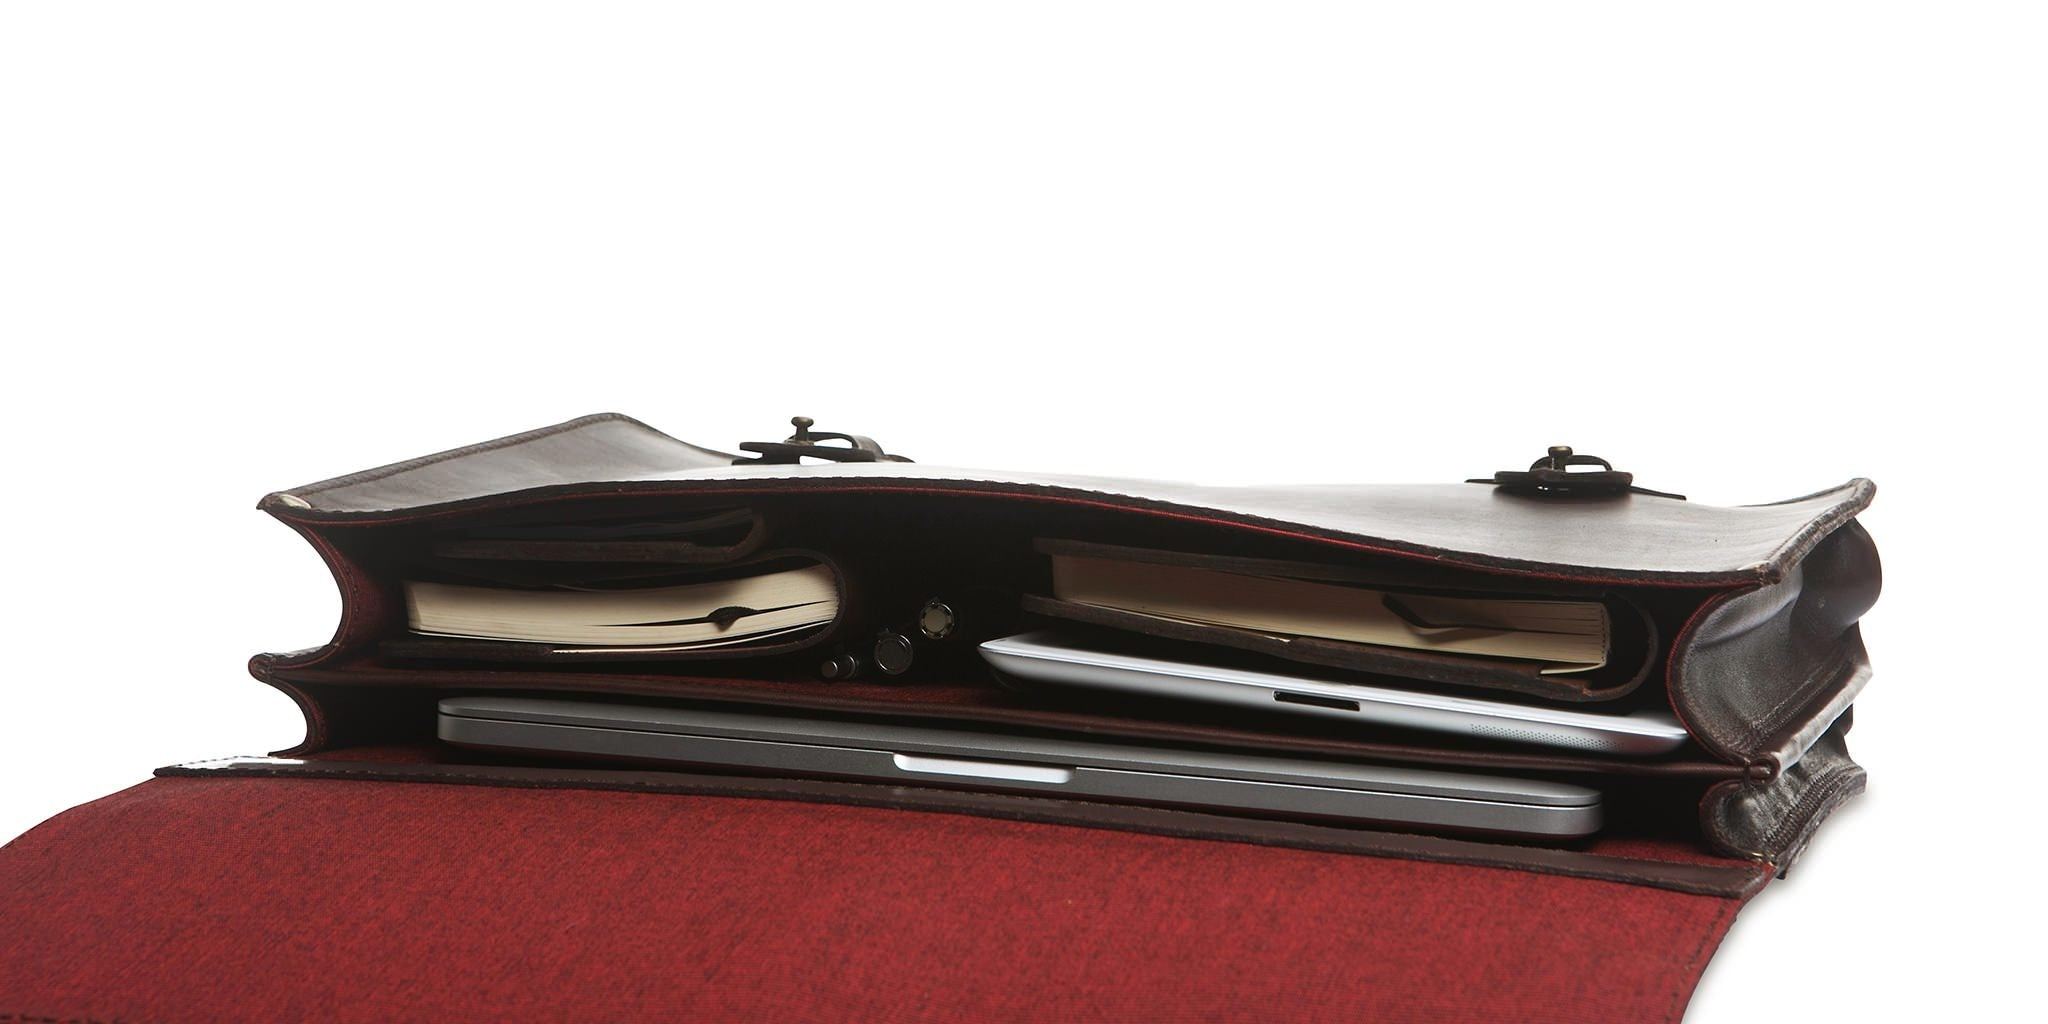 The rear compartment is narrower to efficiently hold your laptop and leave more space for everything else.